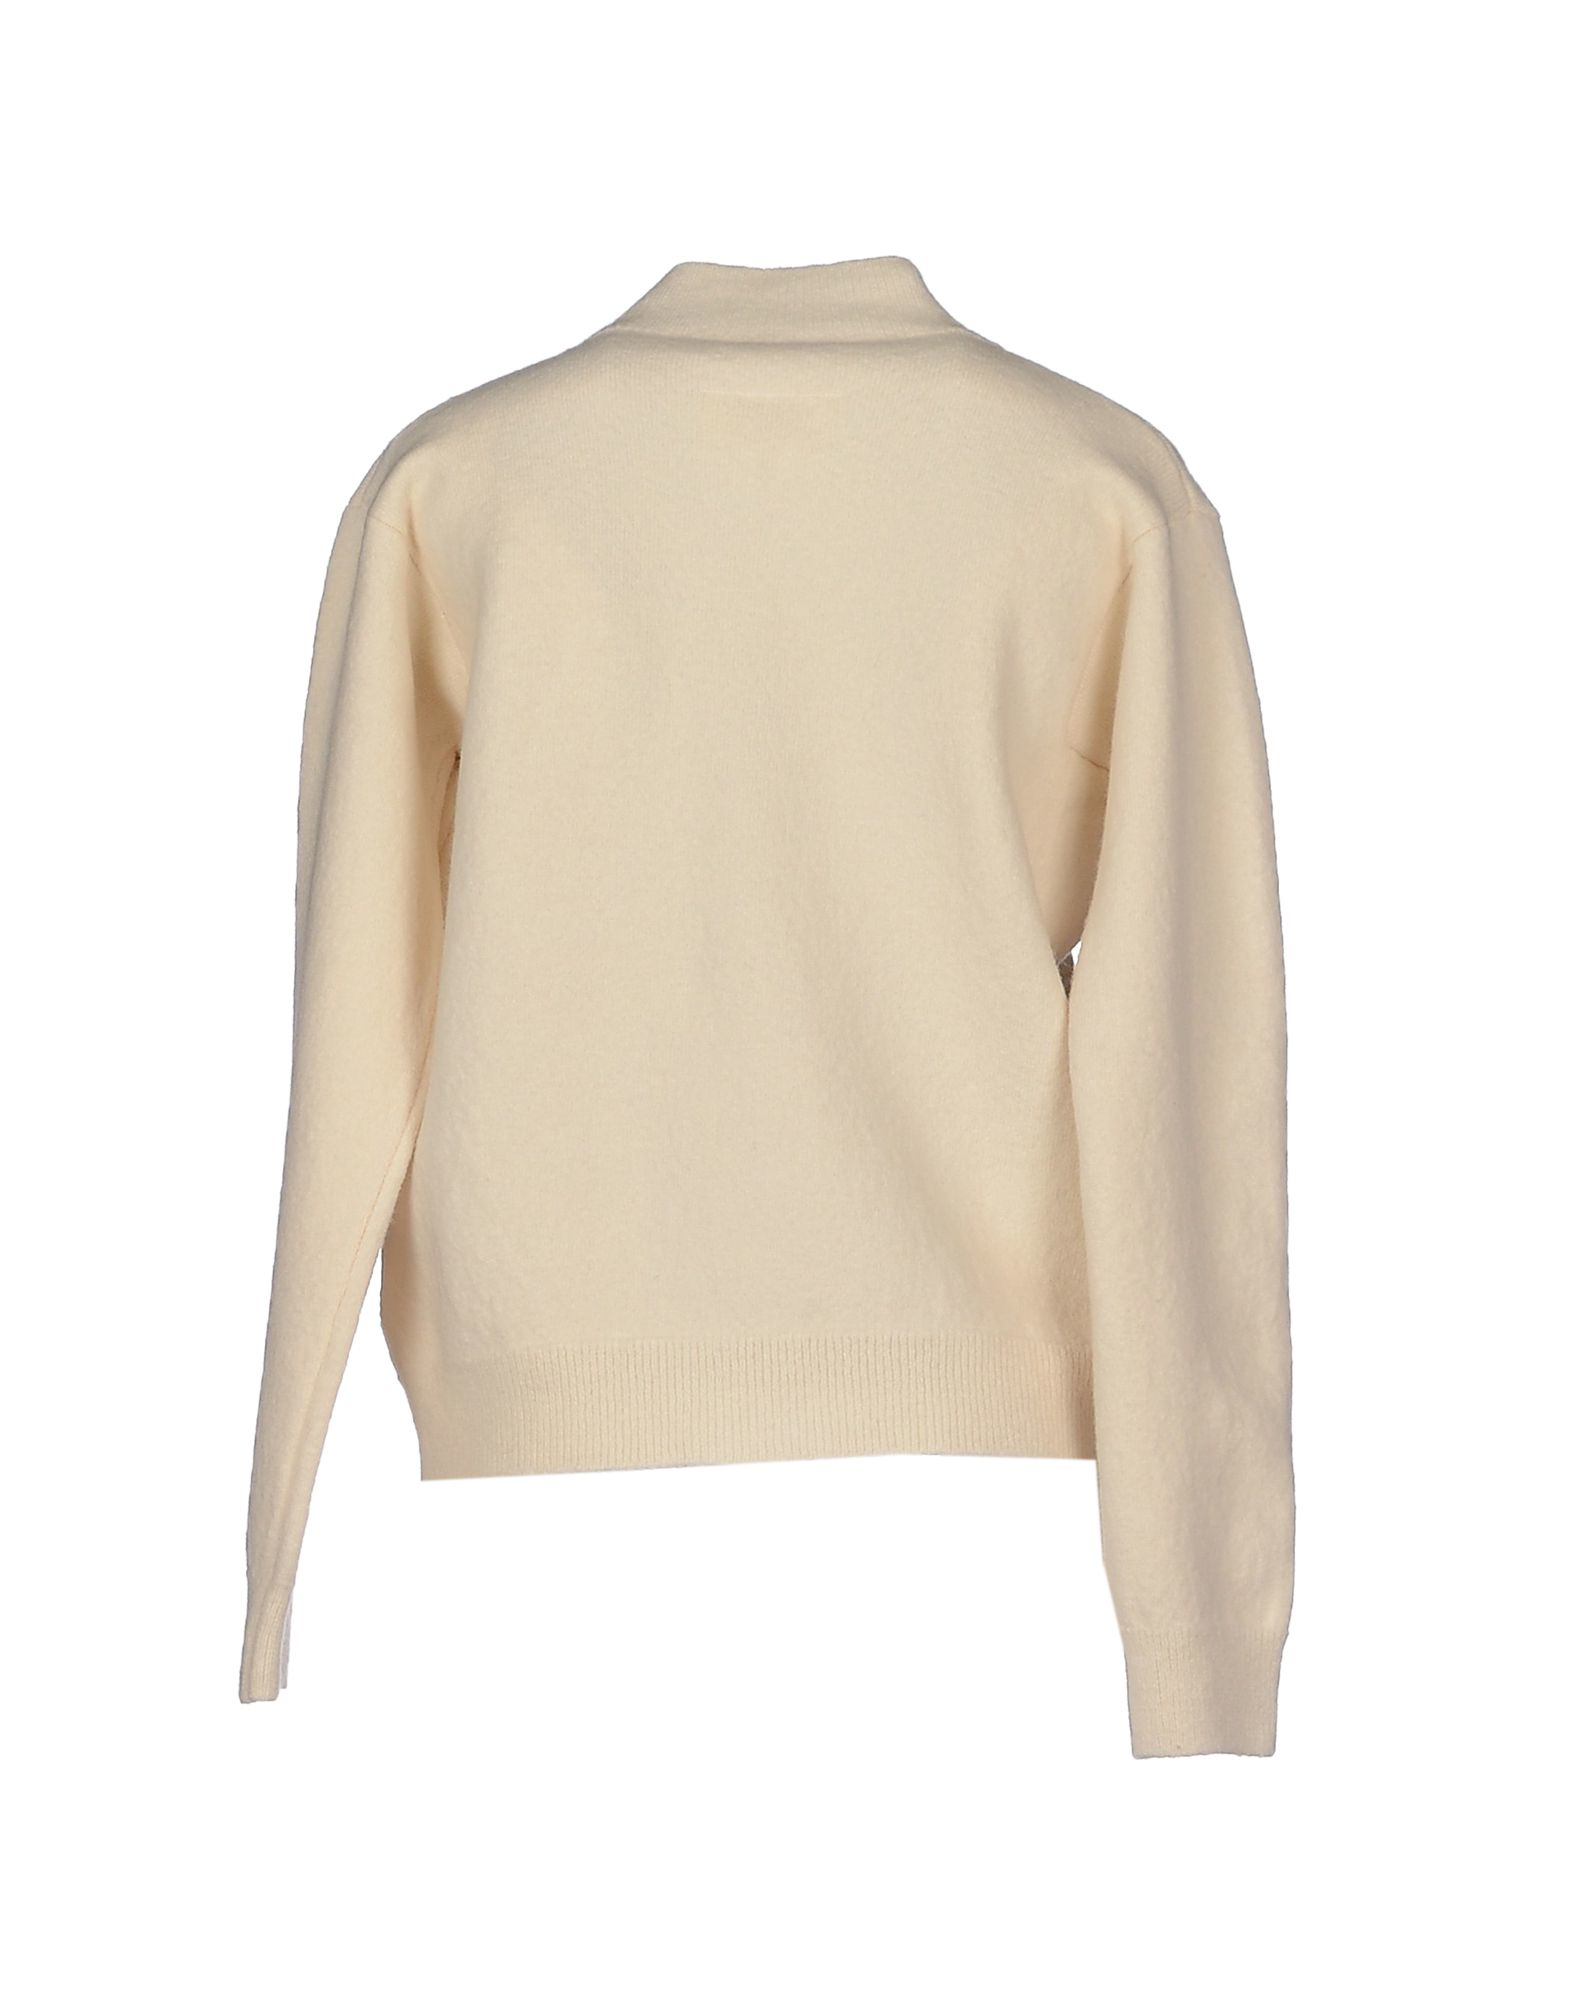 Lyst mm6 by maison martin margiela cardigan in natural for Mm6 maison martin margiela